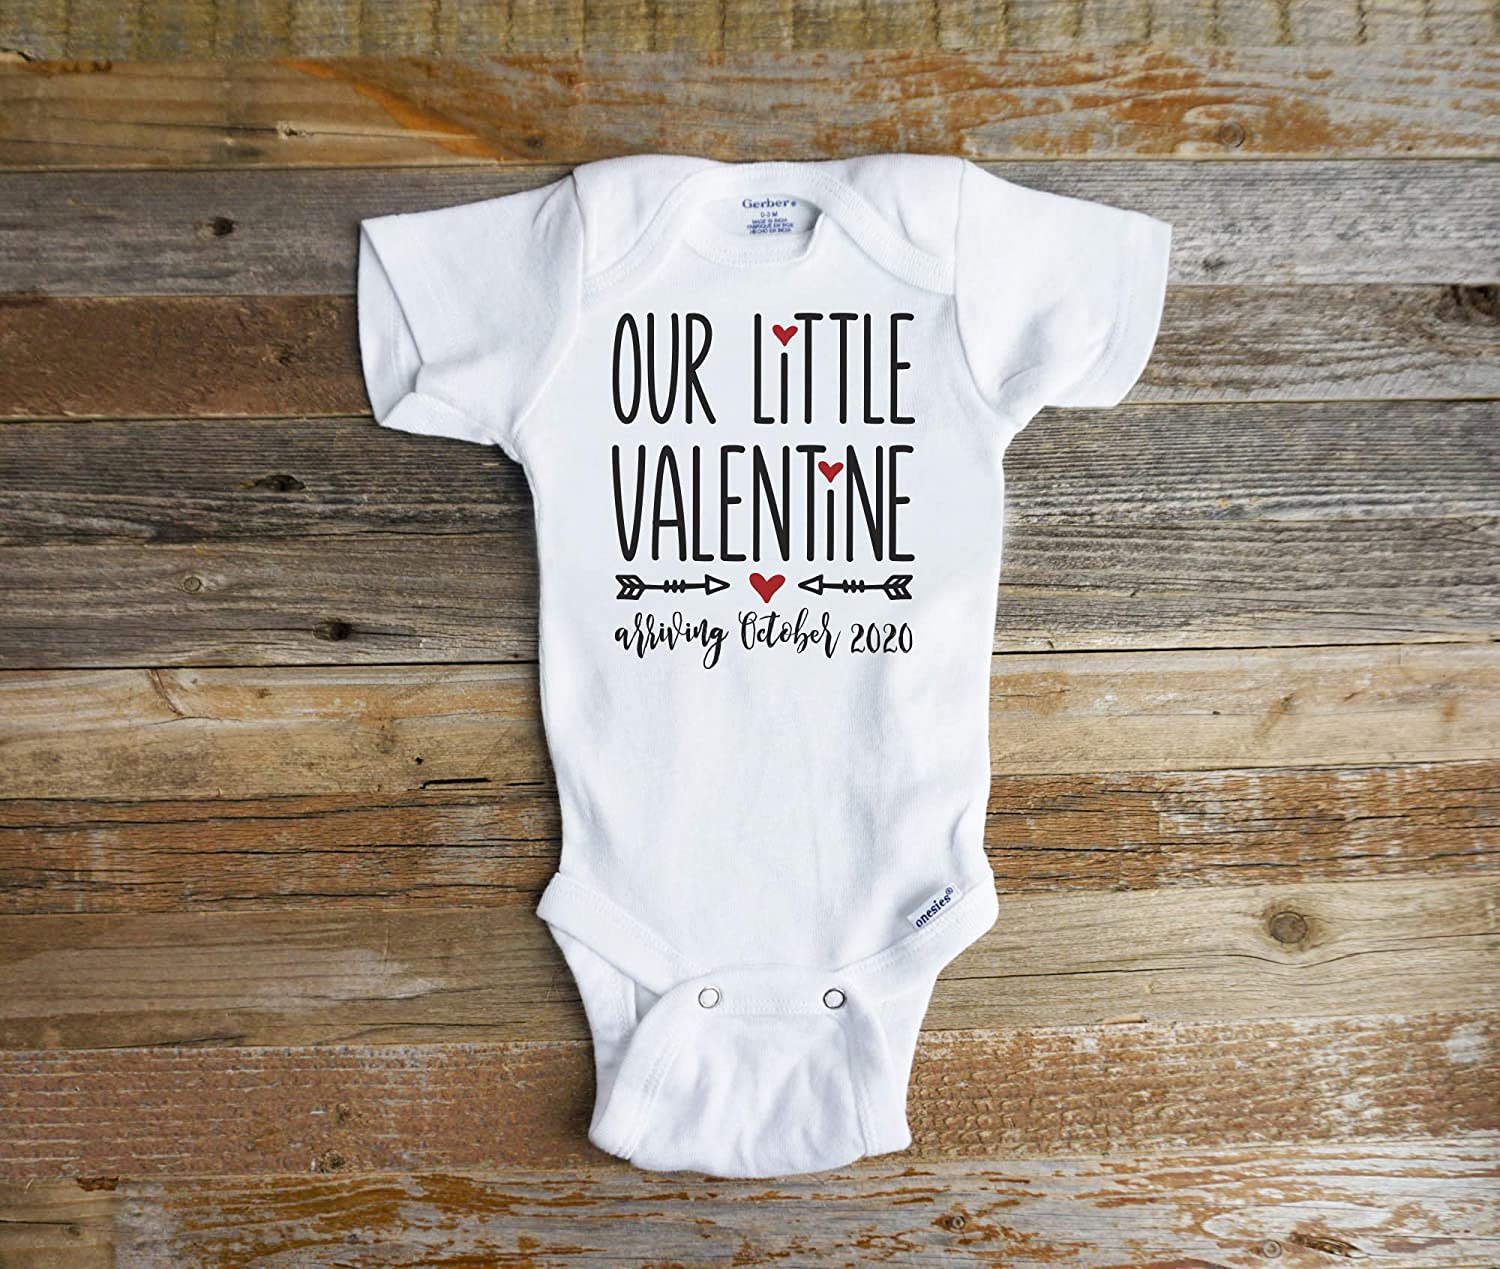 MY LITTLE VALENTINE PERSONALISED BABY TODDLER T SHIRT KIDS FUNNY GIFT CUTE